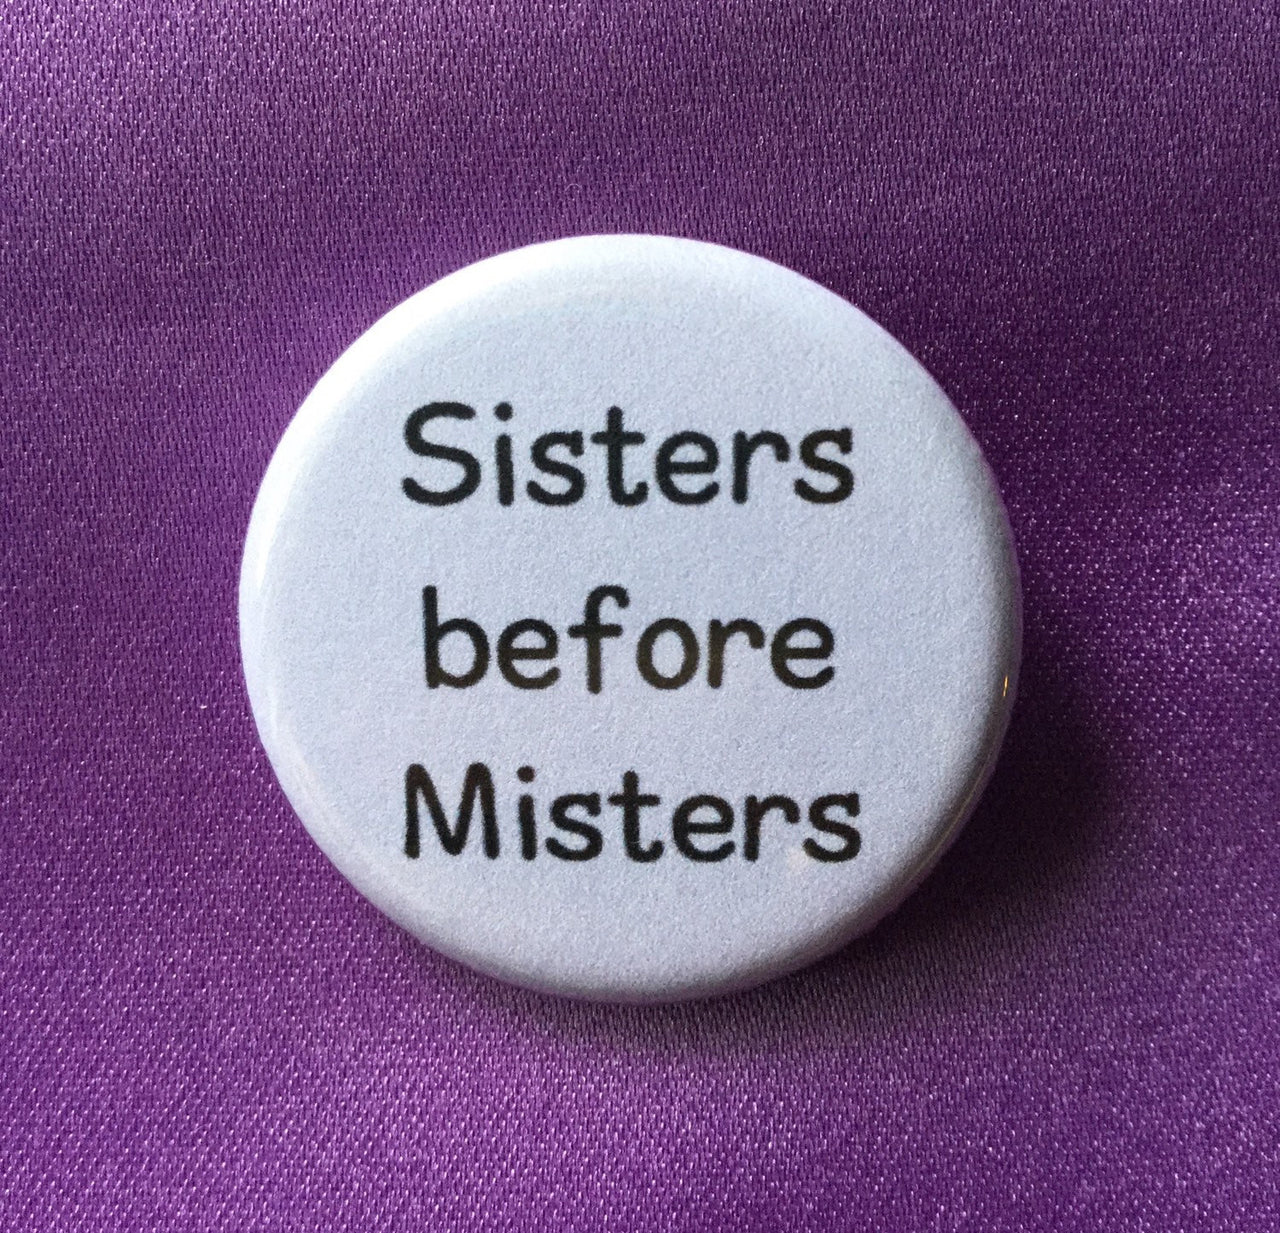 Sisters before misters - Radical Buttons